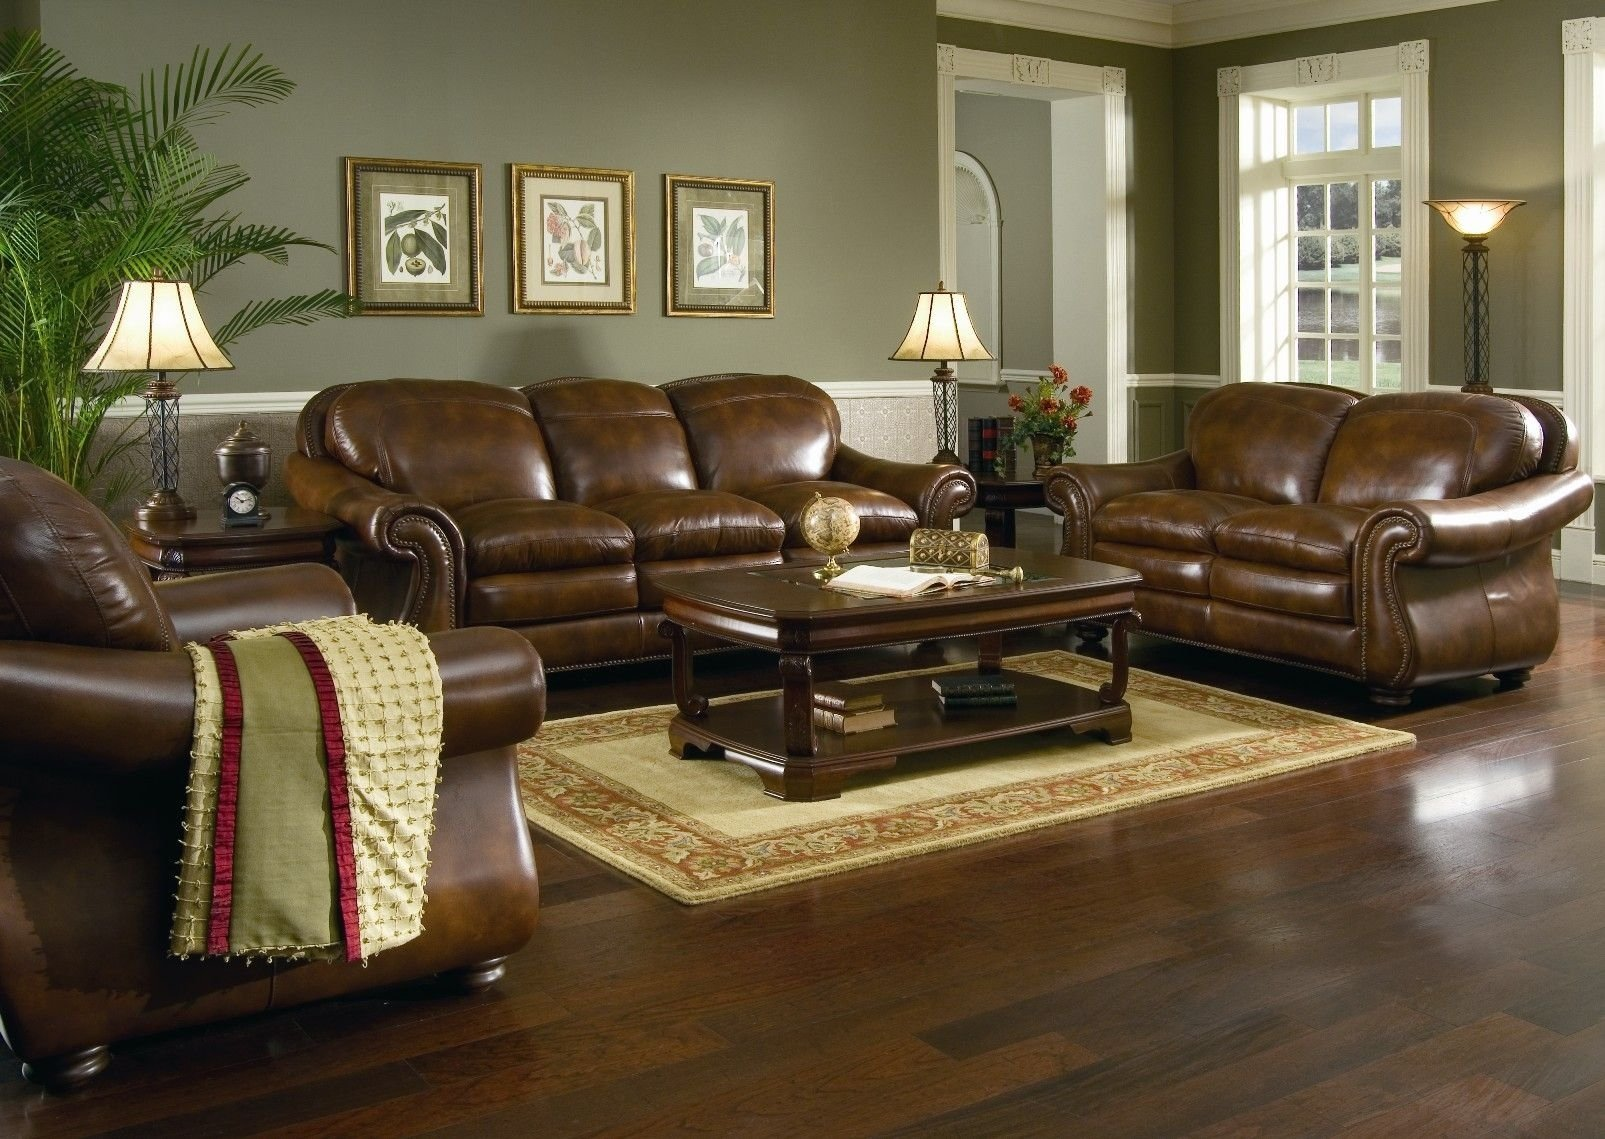 10 Gorgeous Living Room Paint Ideas With Brown Furniture brown leather sofa set for living room with dark hardwood floors 1 2021